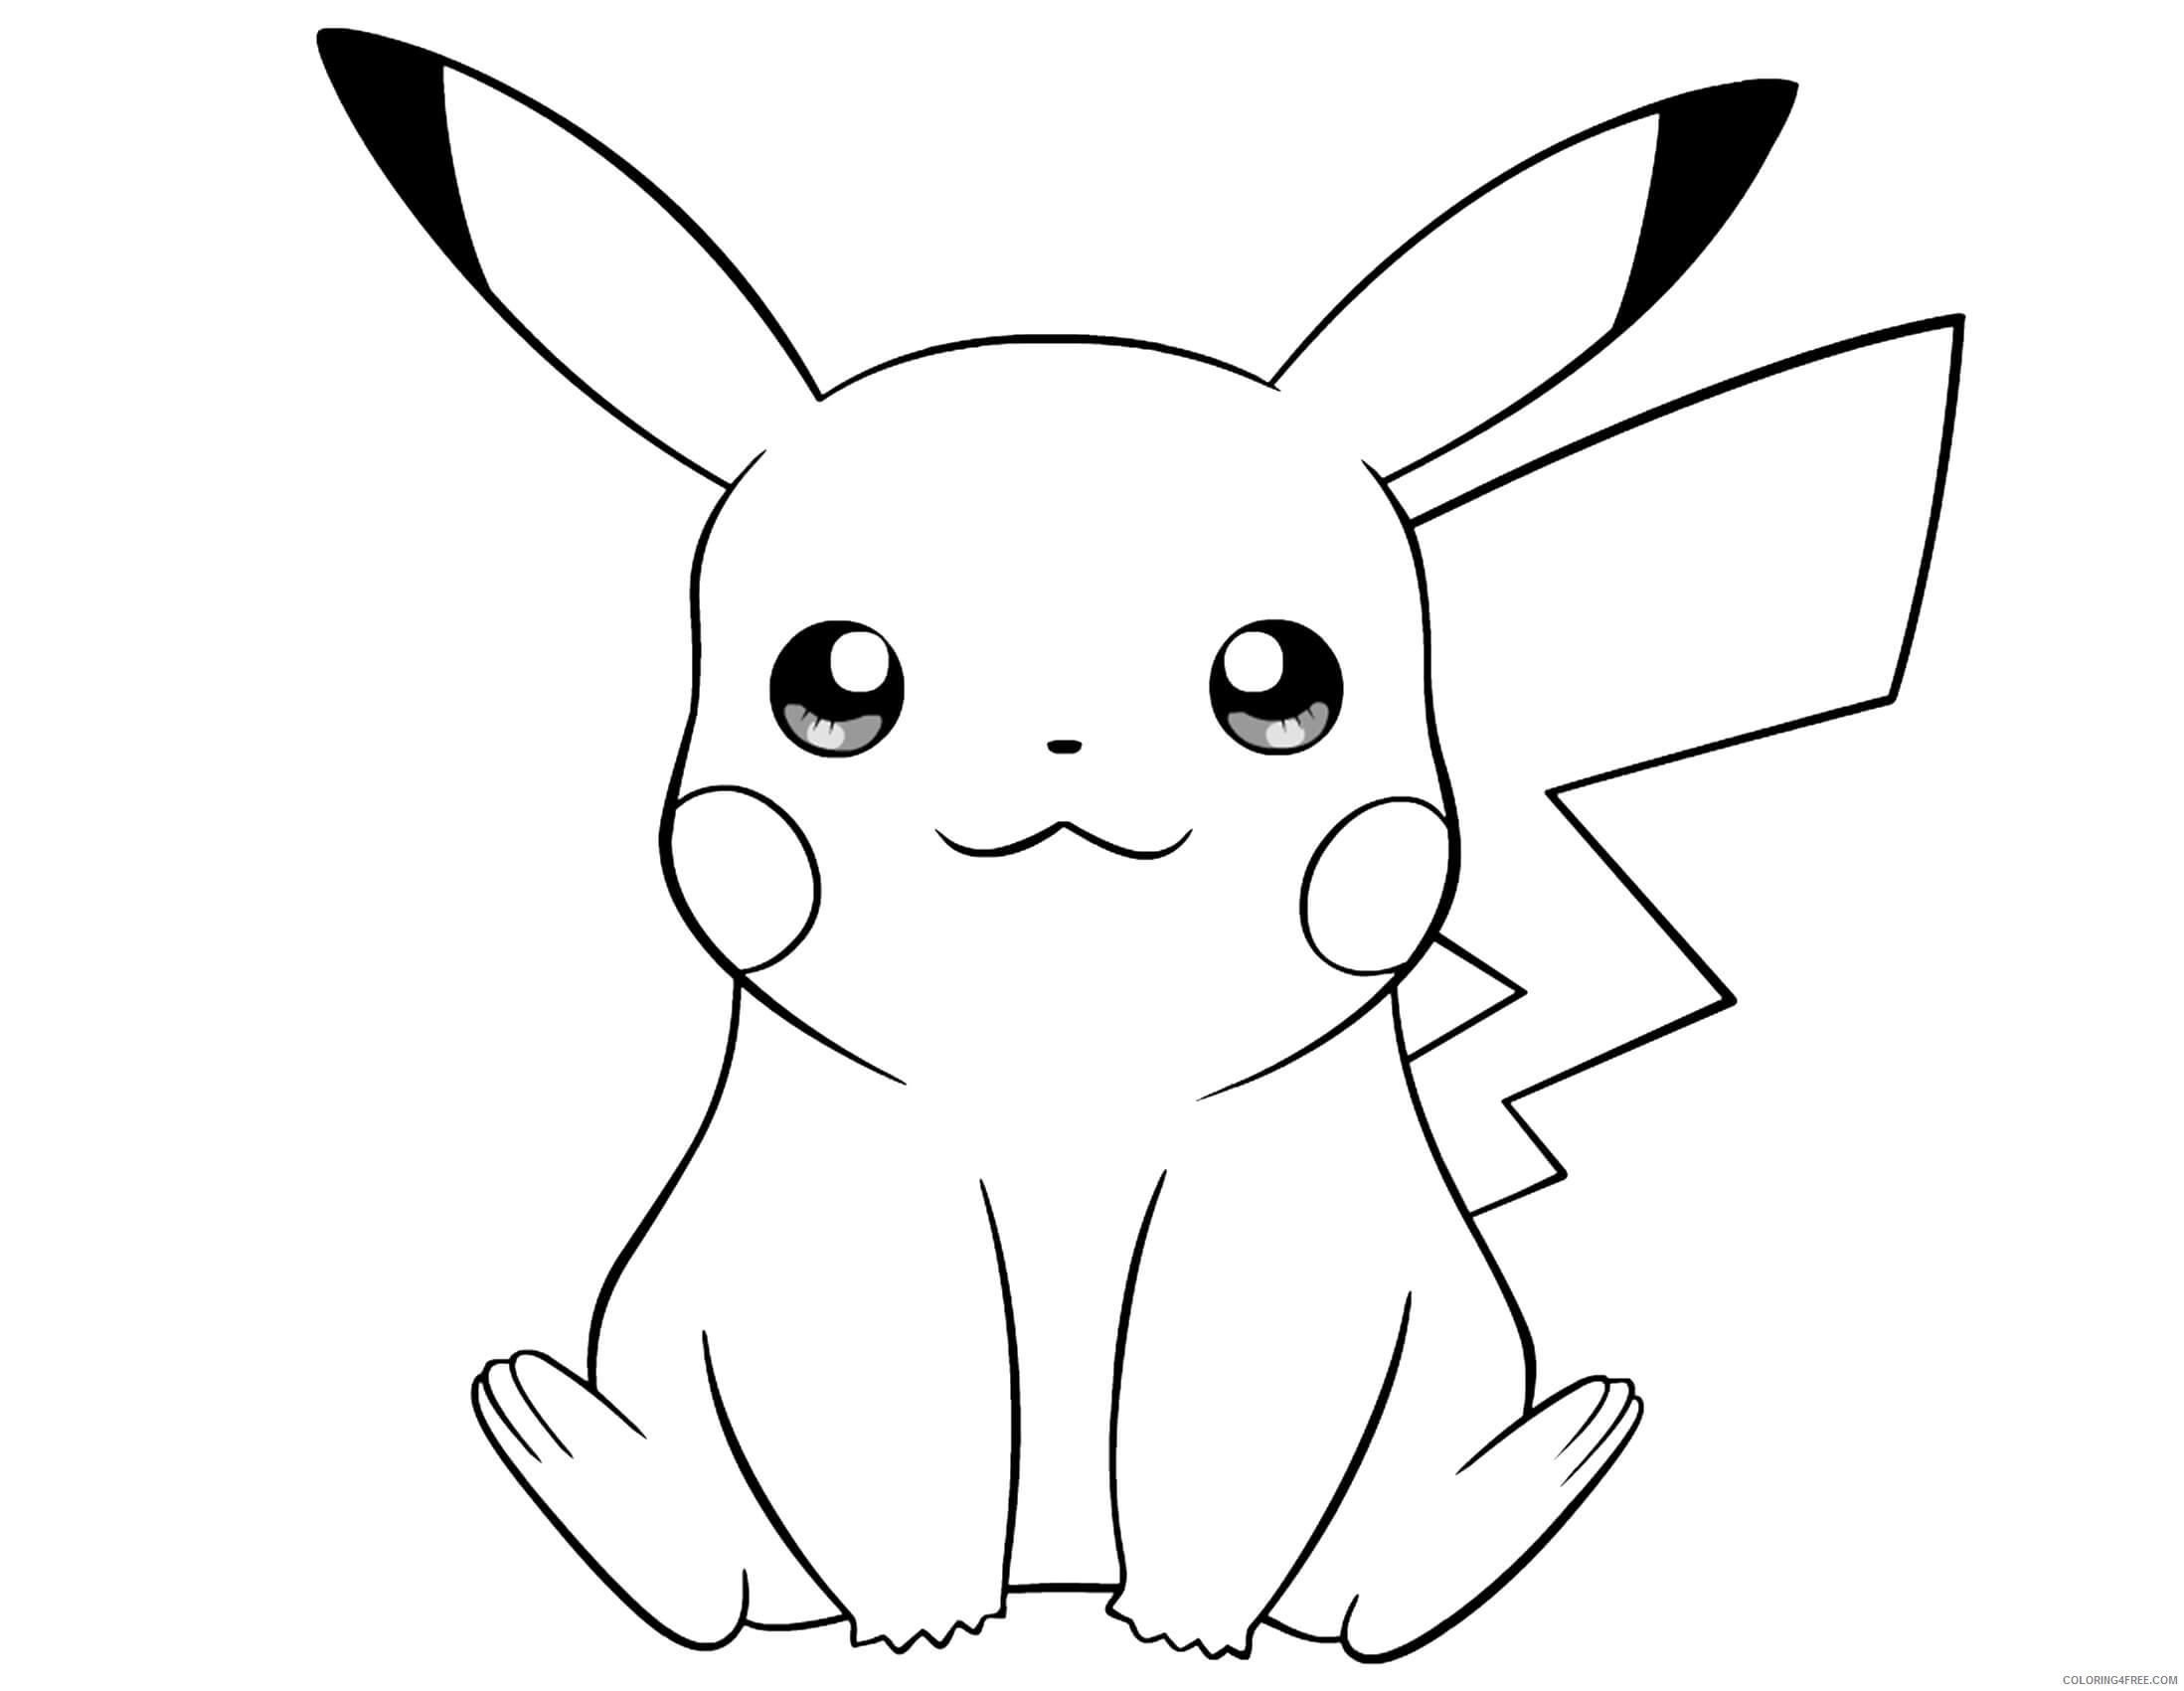 pikachu coloring pages cute Coloring4free